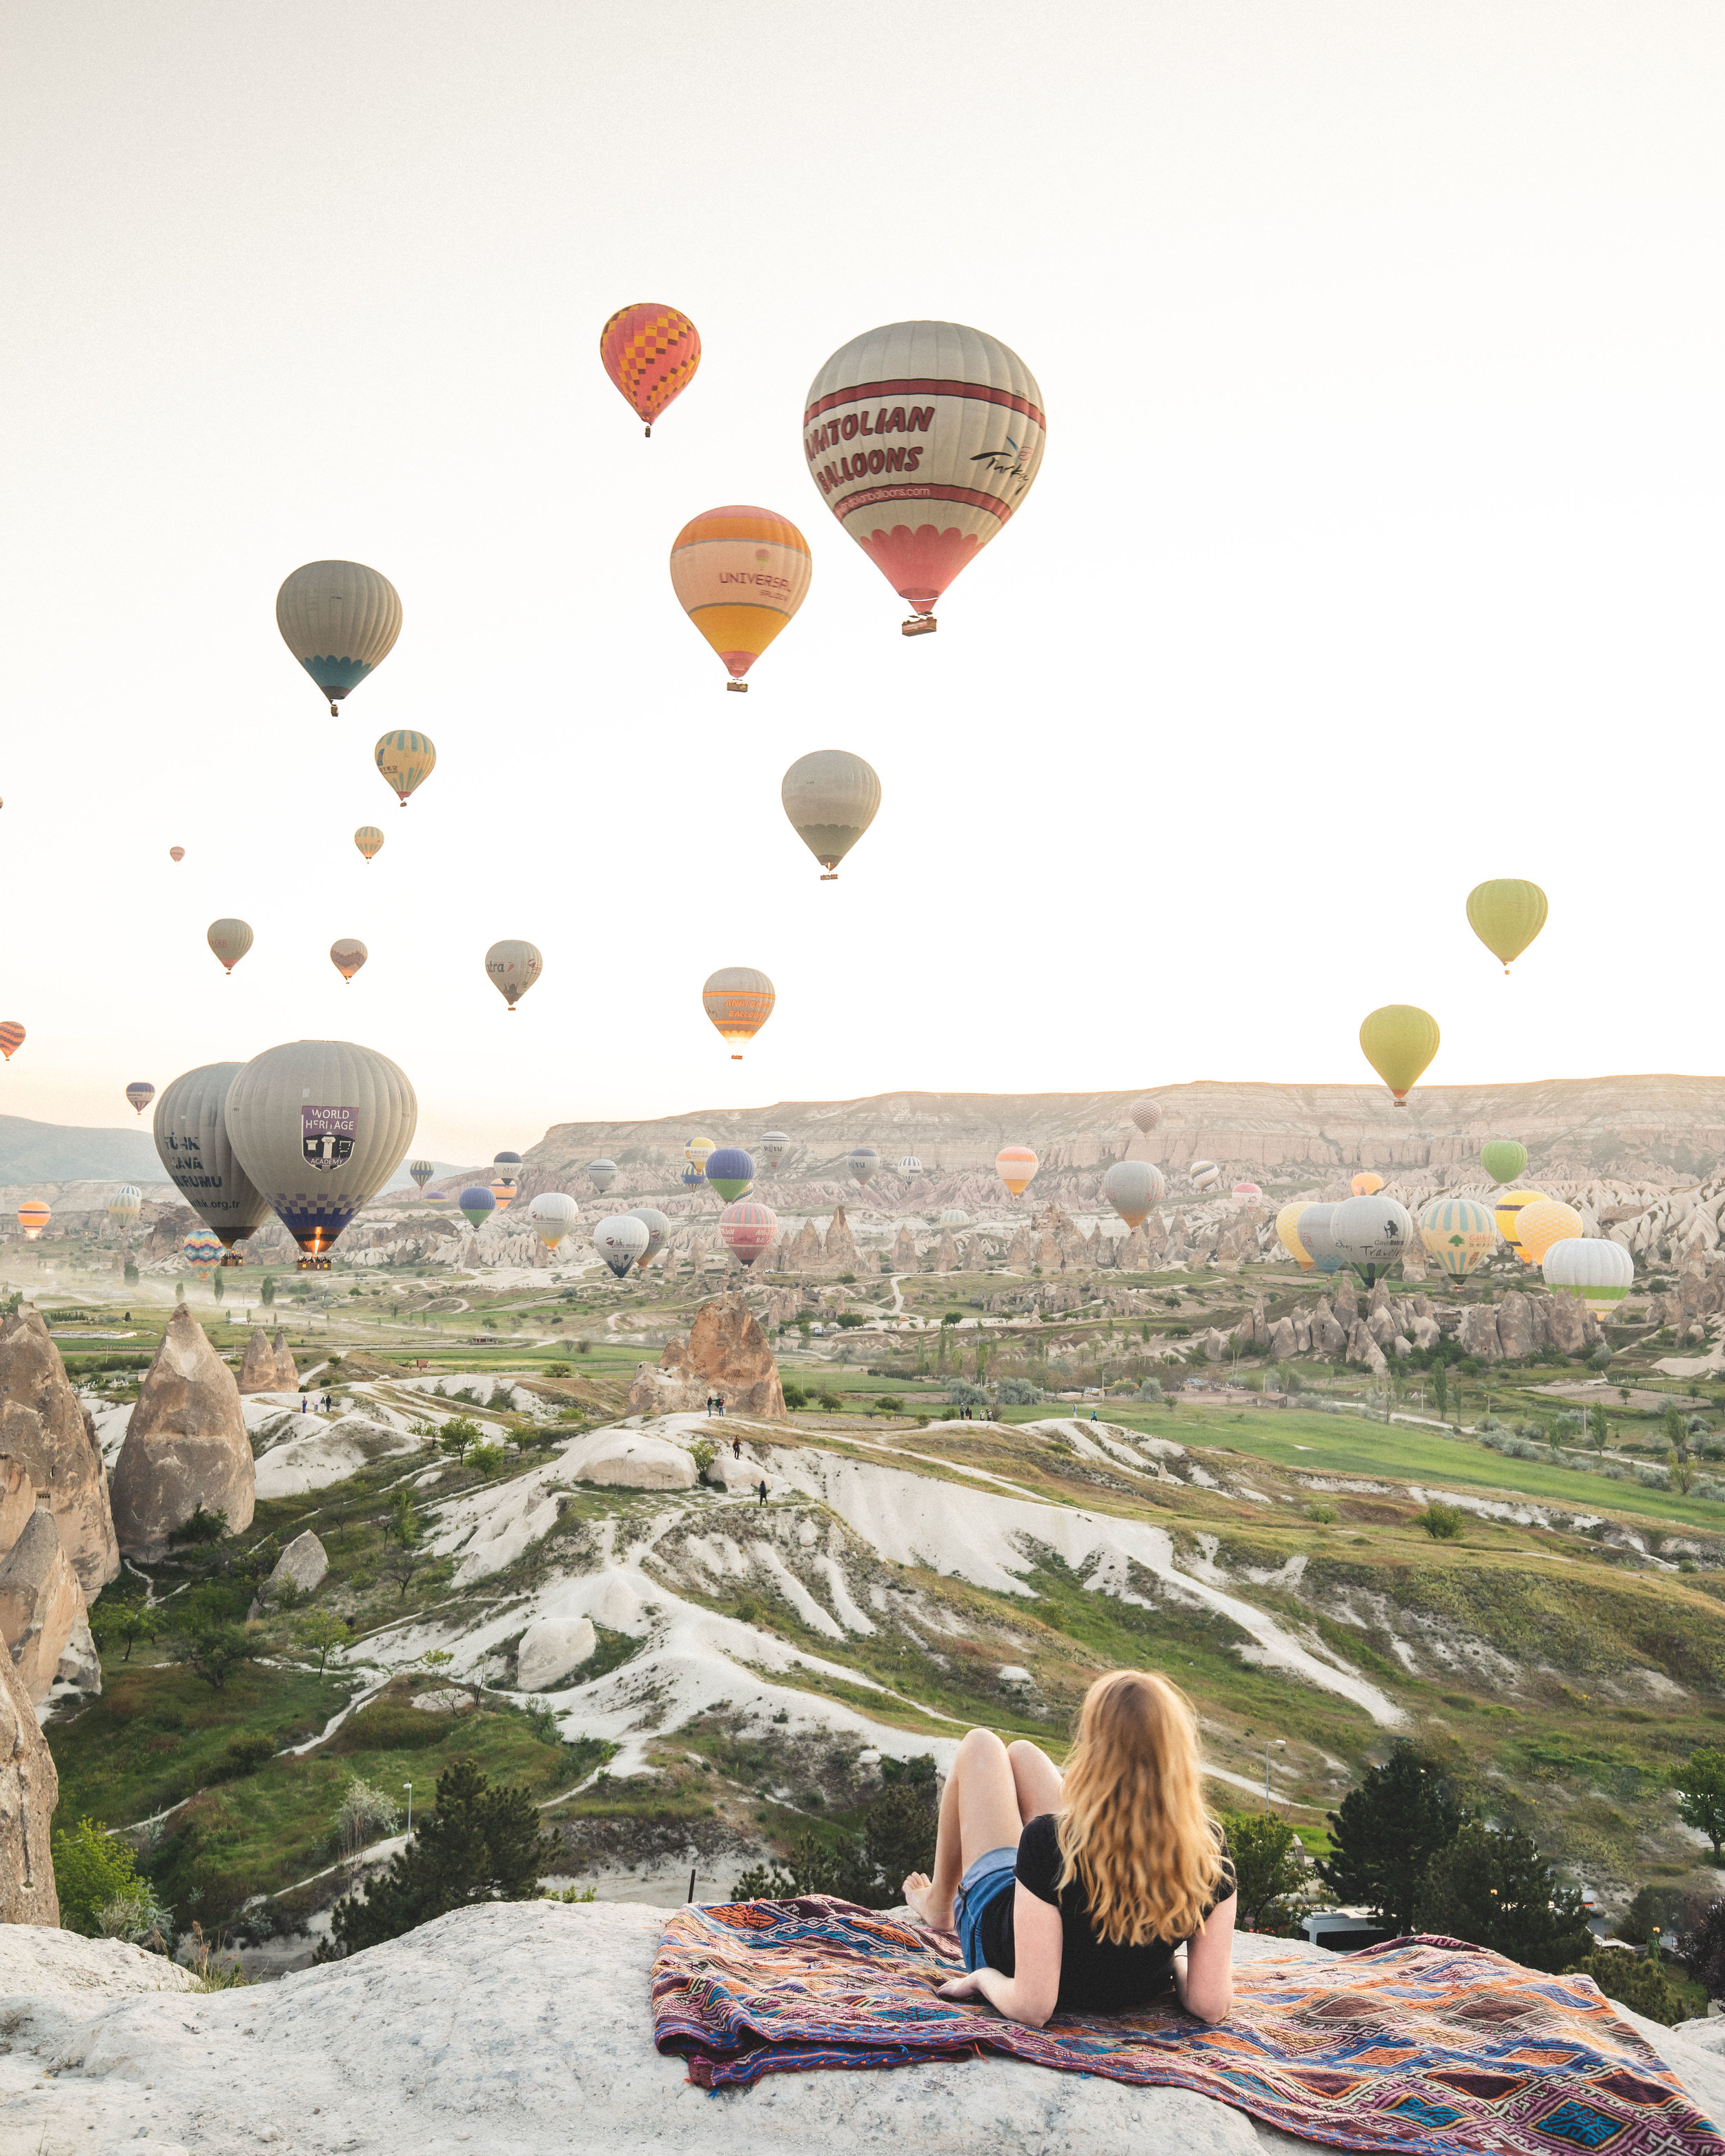 Sunset Hill, Goreme - Instagrammable places in Cappadocia